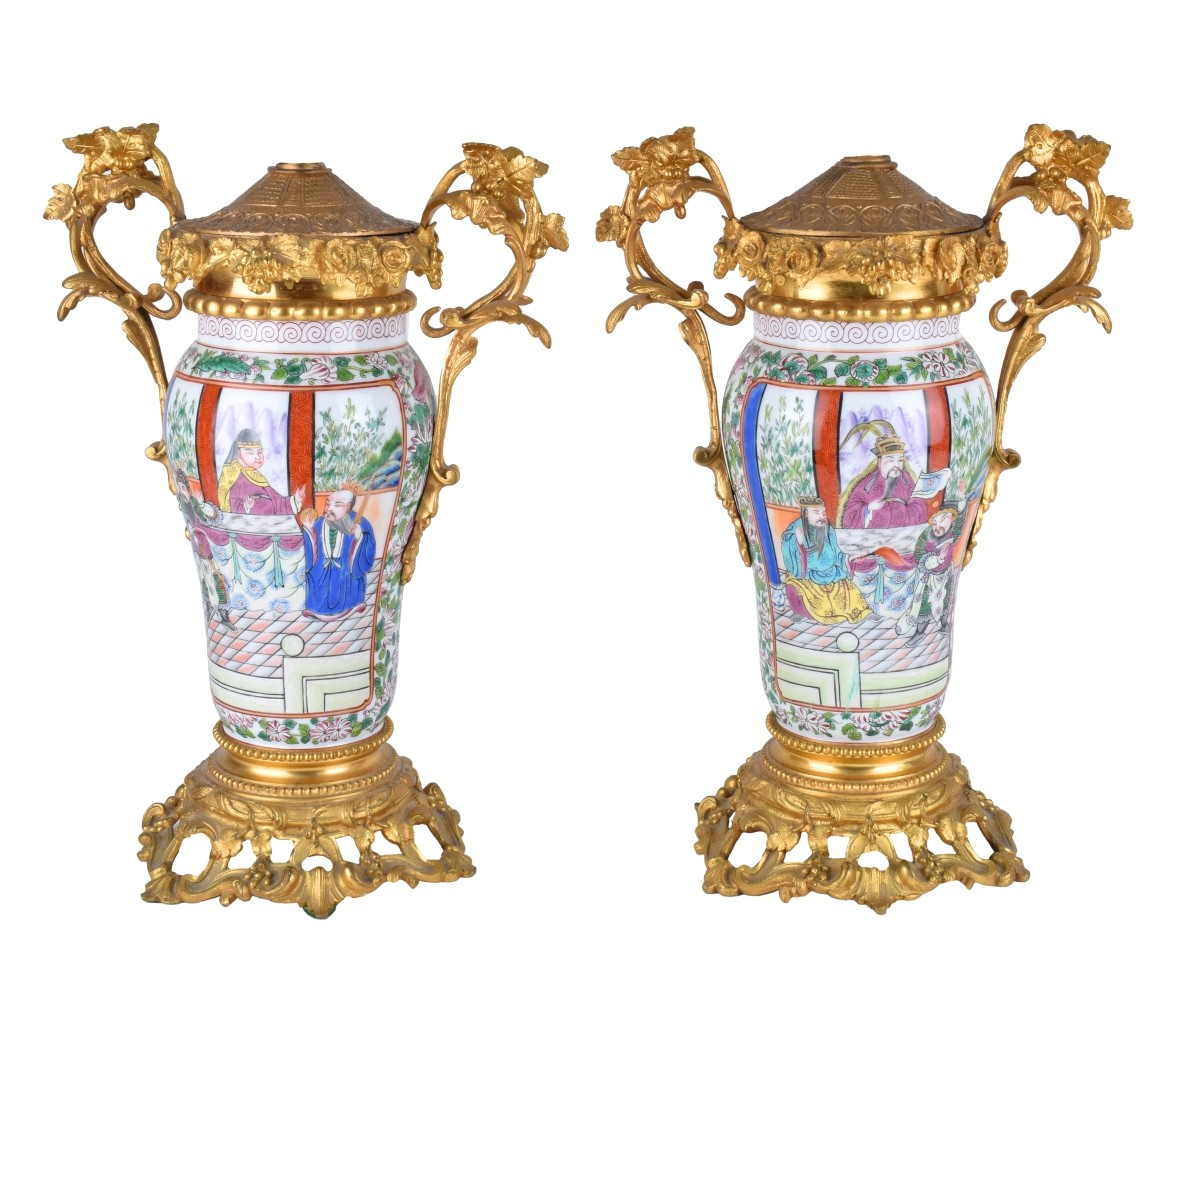 A Pair of Chinese Export Porcelain Vases as Lamps